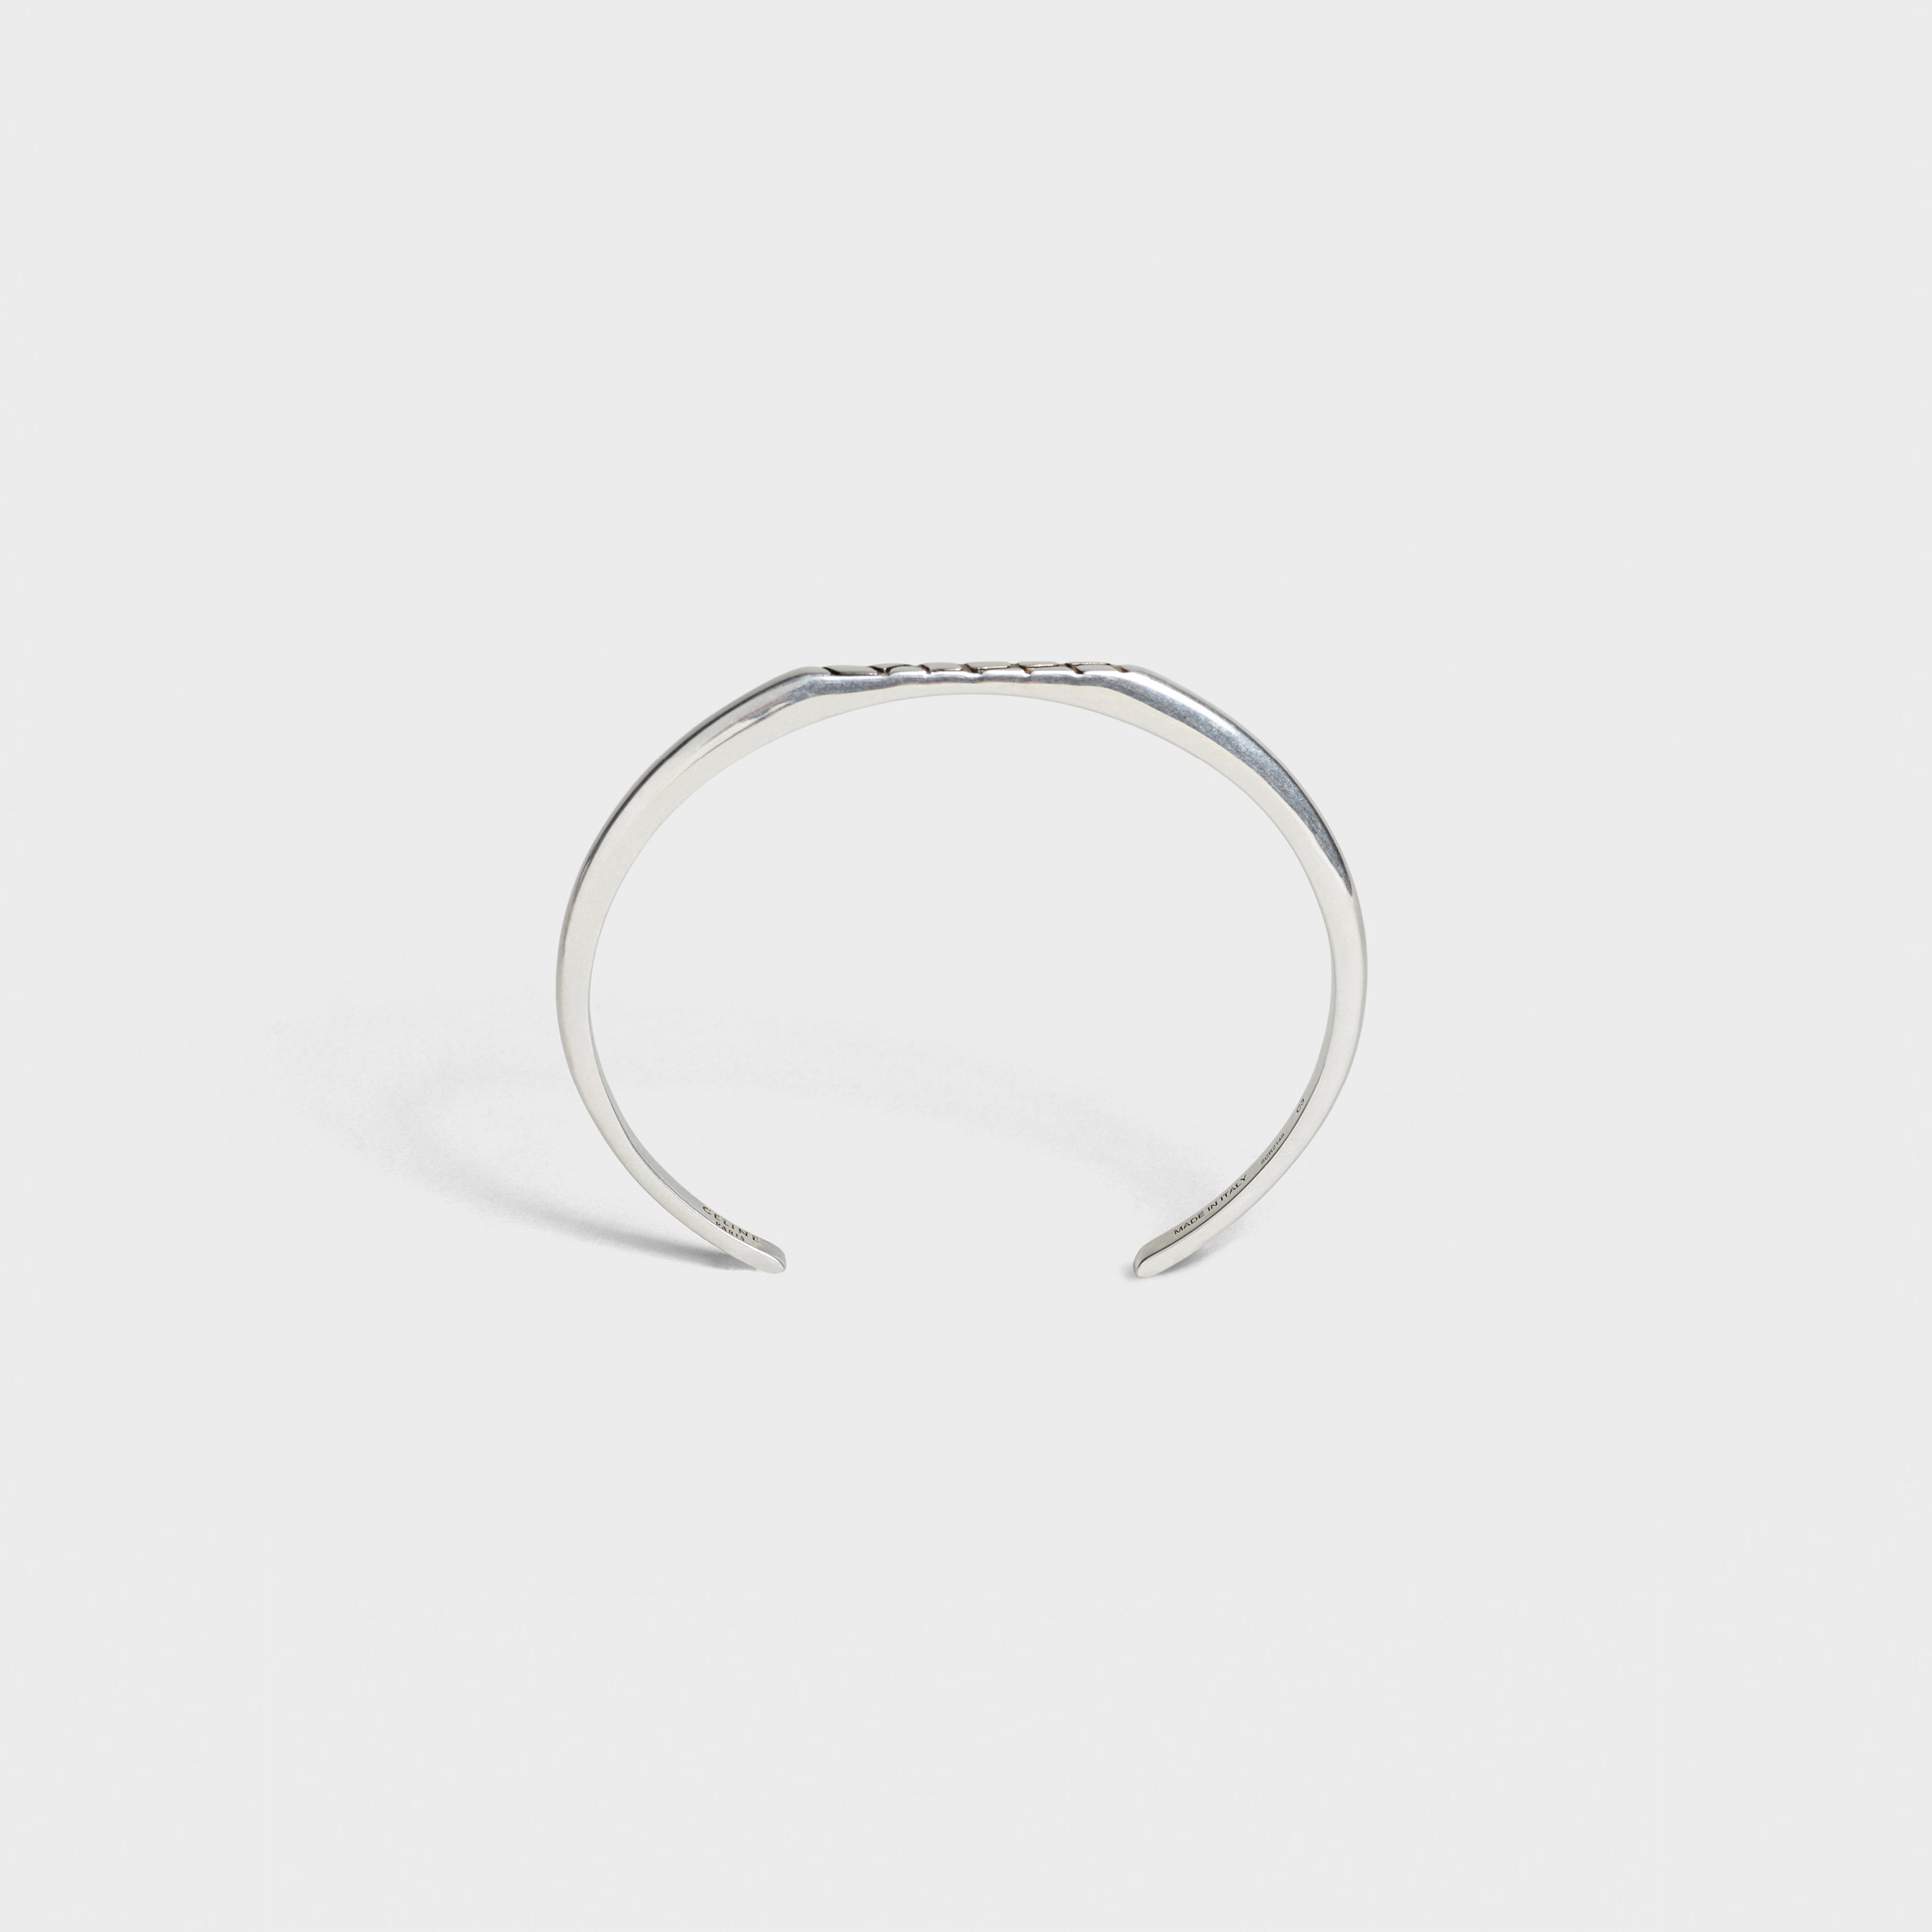 Celine Animals flat bracelet in brass with vintage silver finish | CELINE